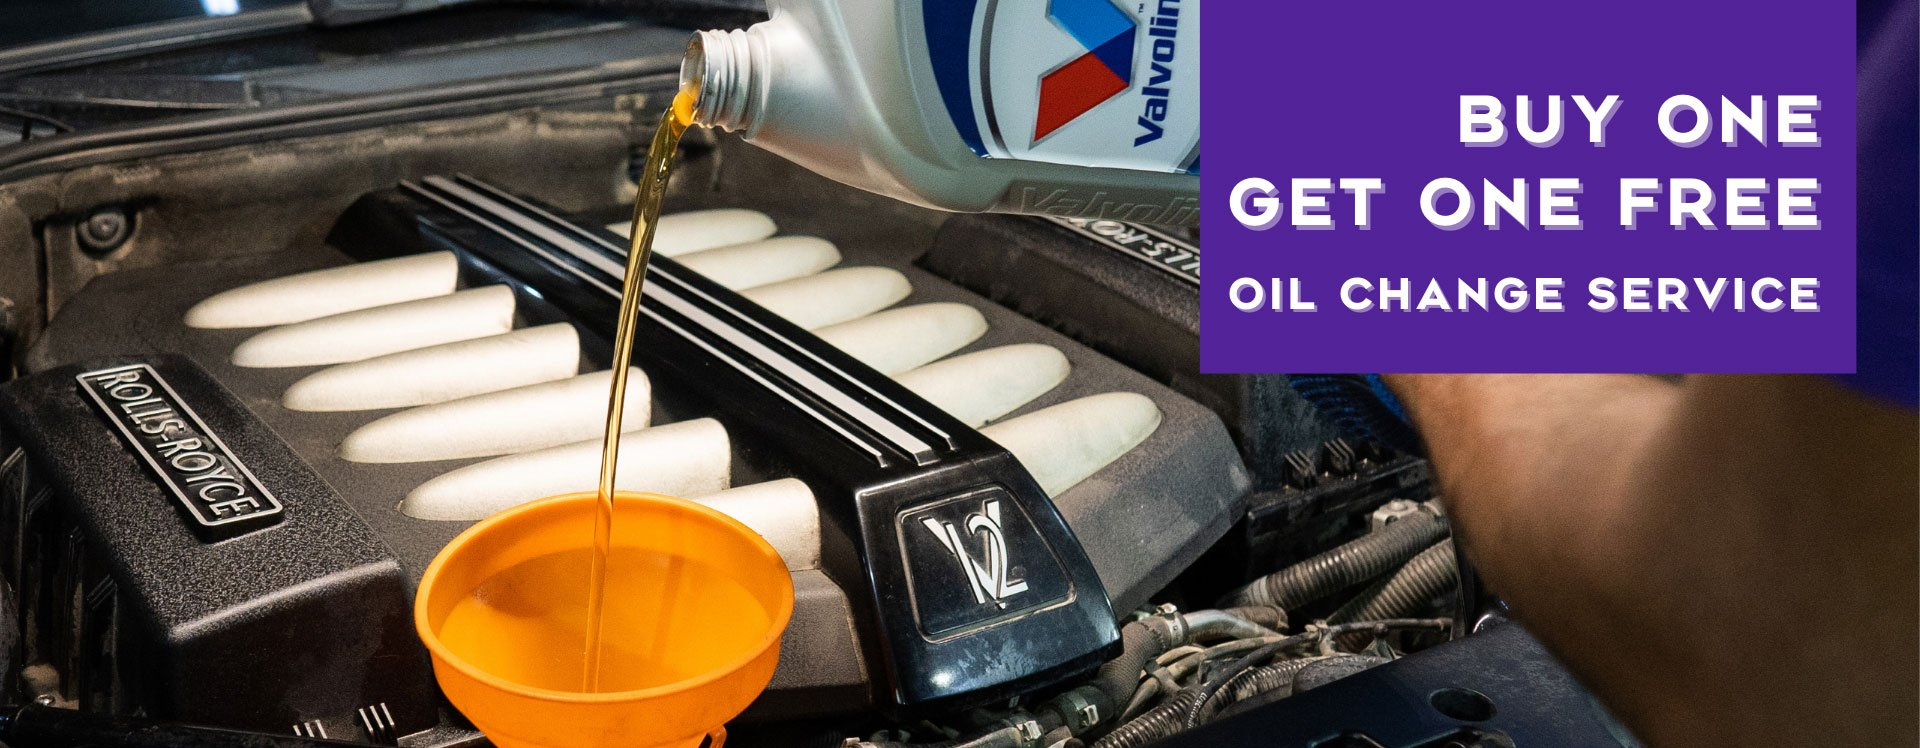 Buy One Get One Oil Change Free